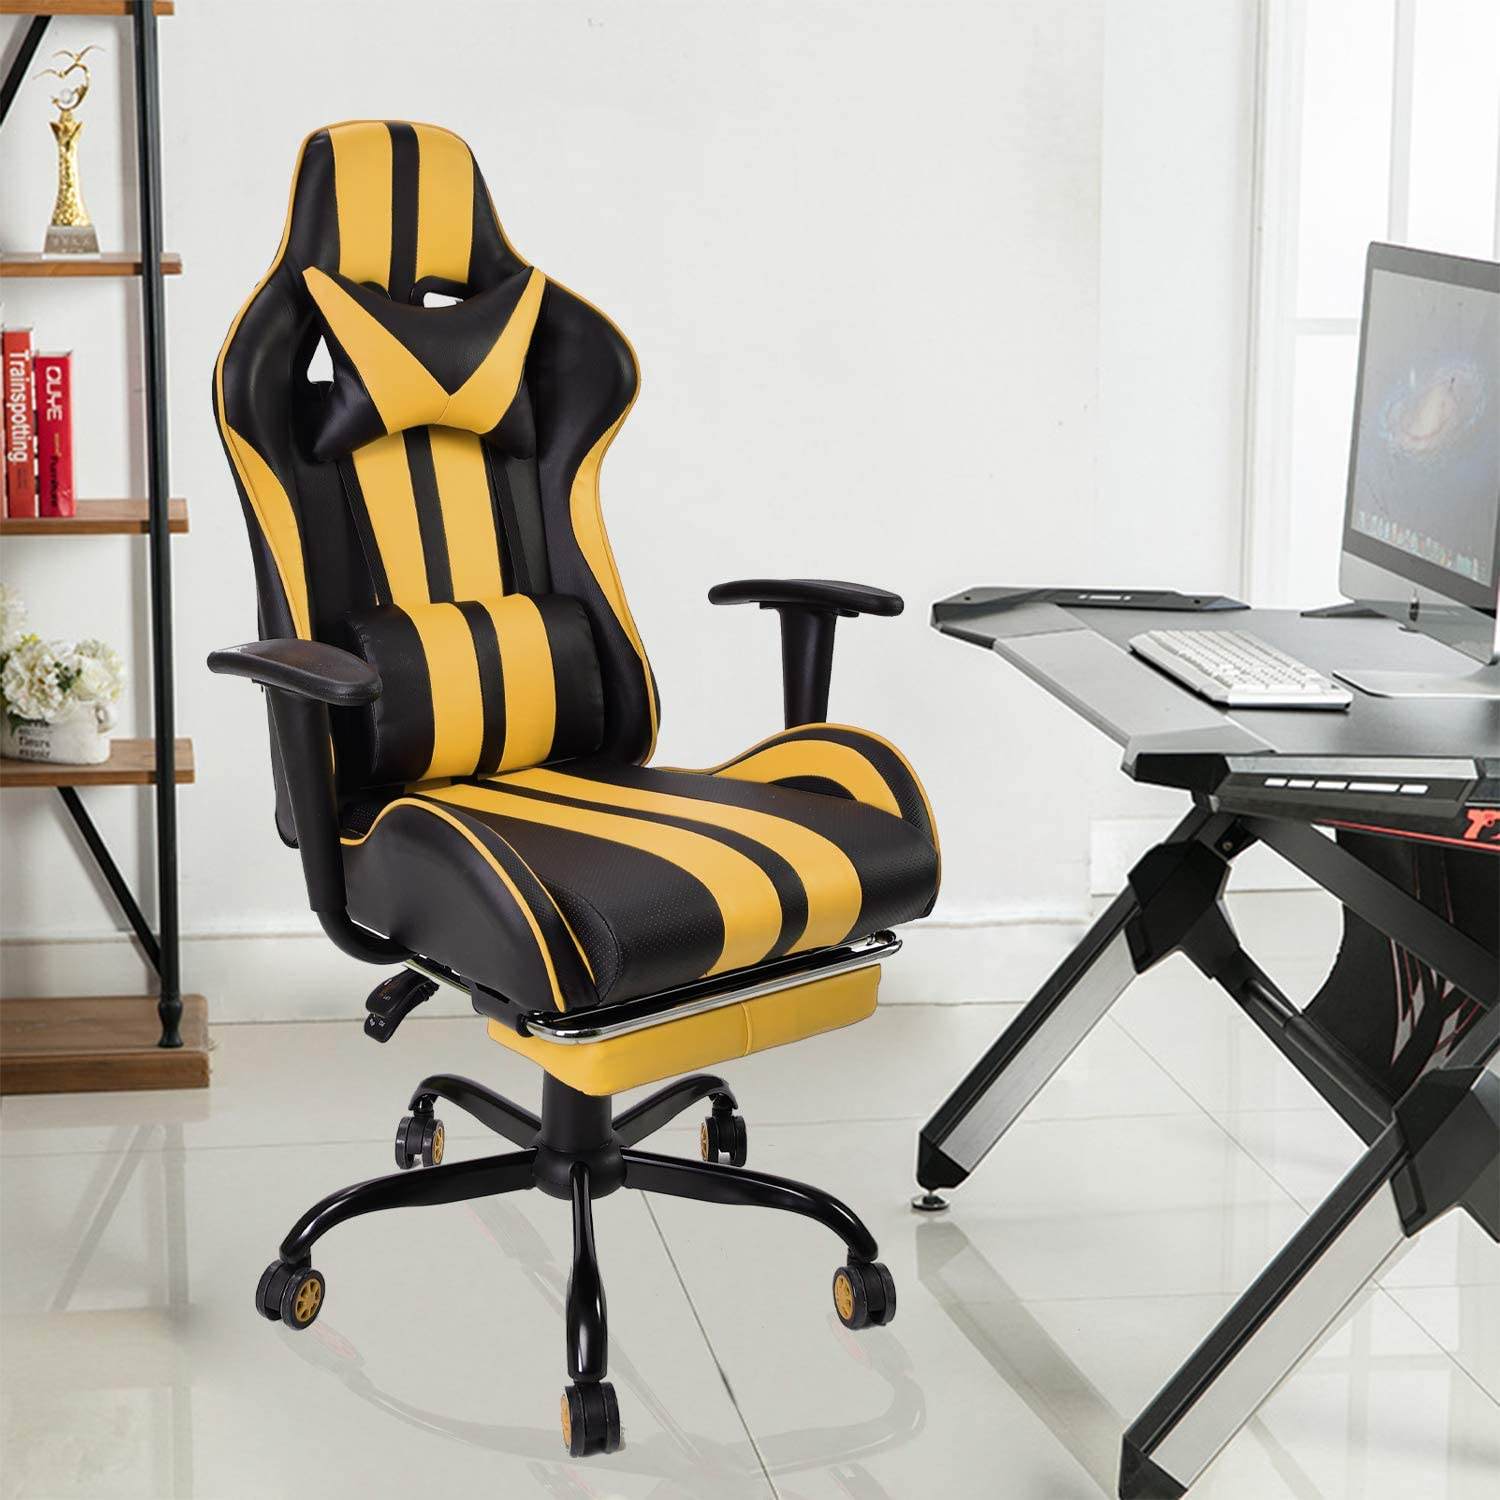 Video Gaming Chair,E-Sports Chair,Office Chair,PC Computer Chair Racing Yellow Racing Style Racing Chair with Hight Adjustment,Massage Lumbar Support,Headrest,Retractable Footrest